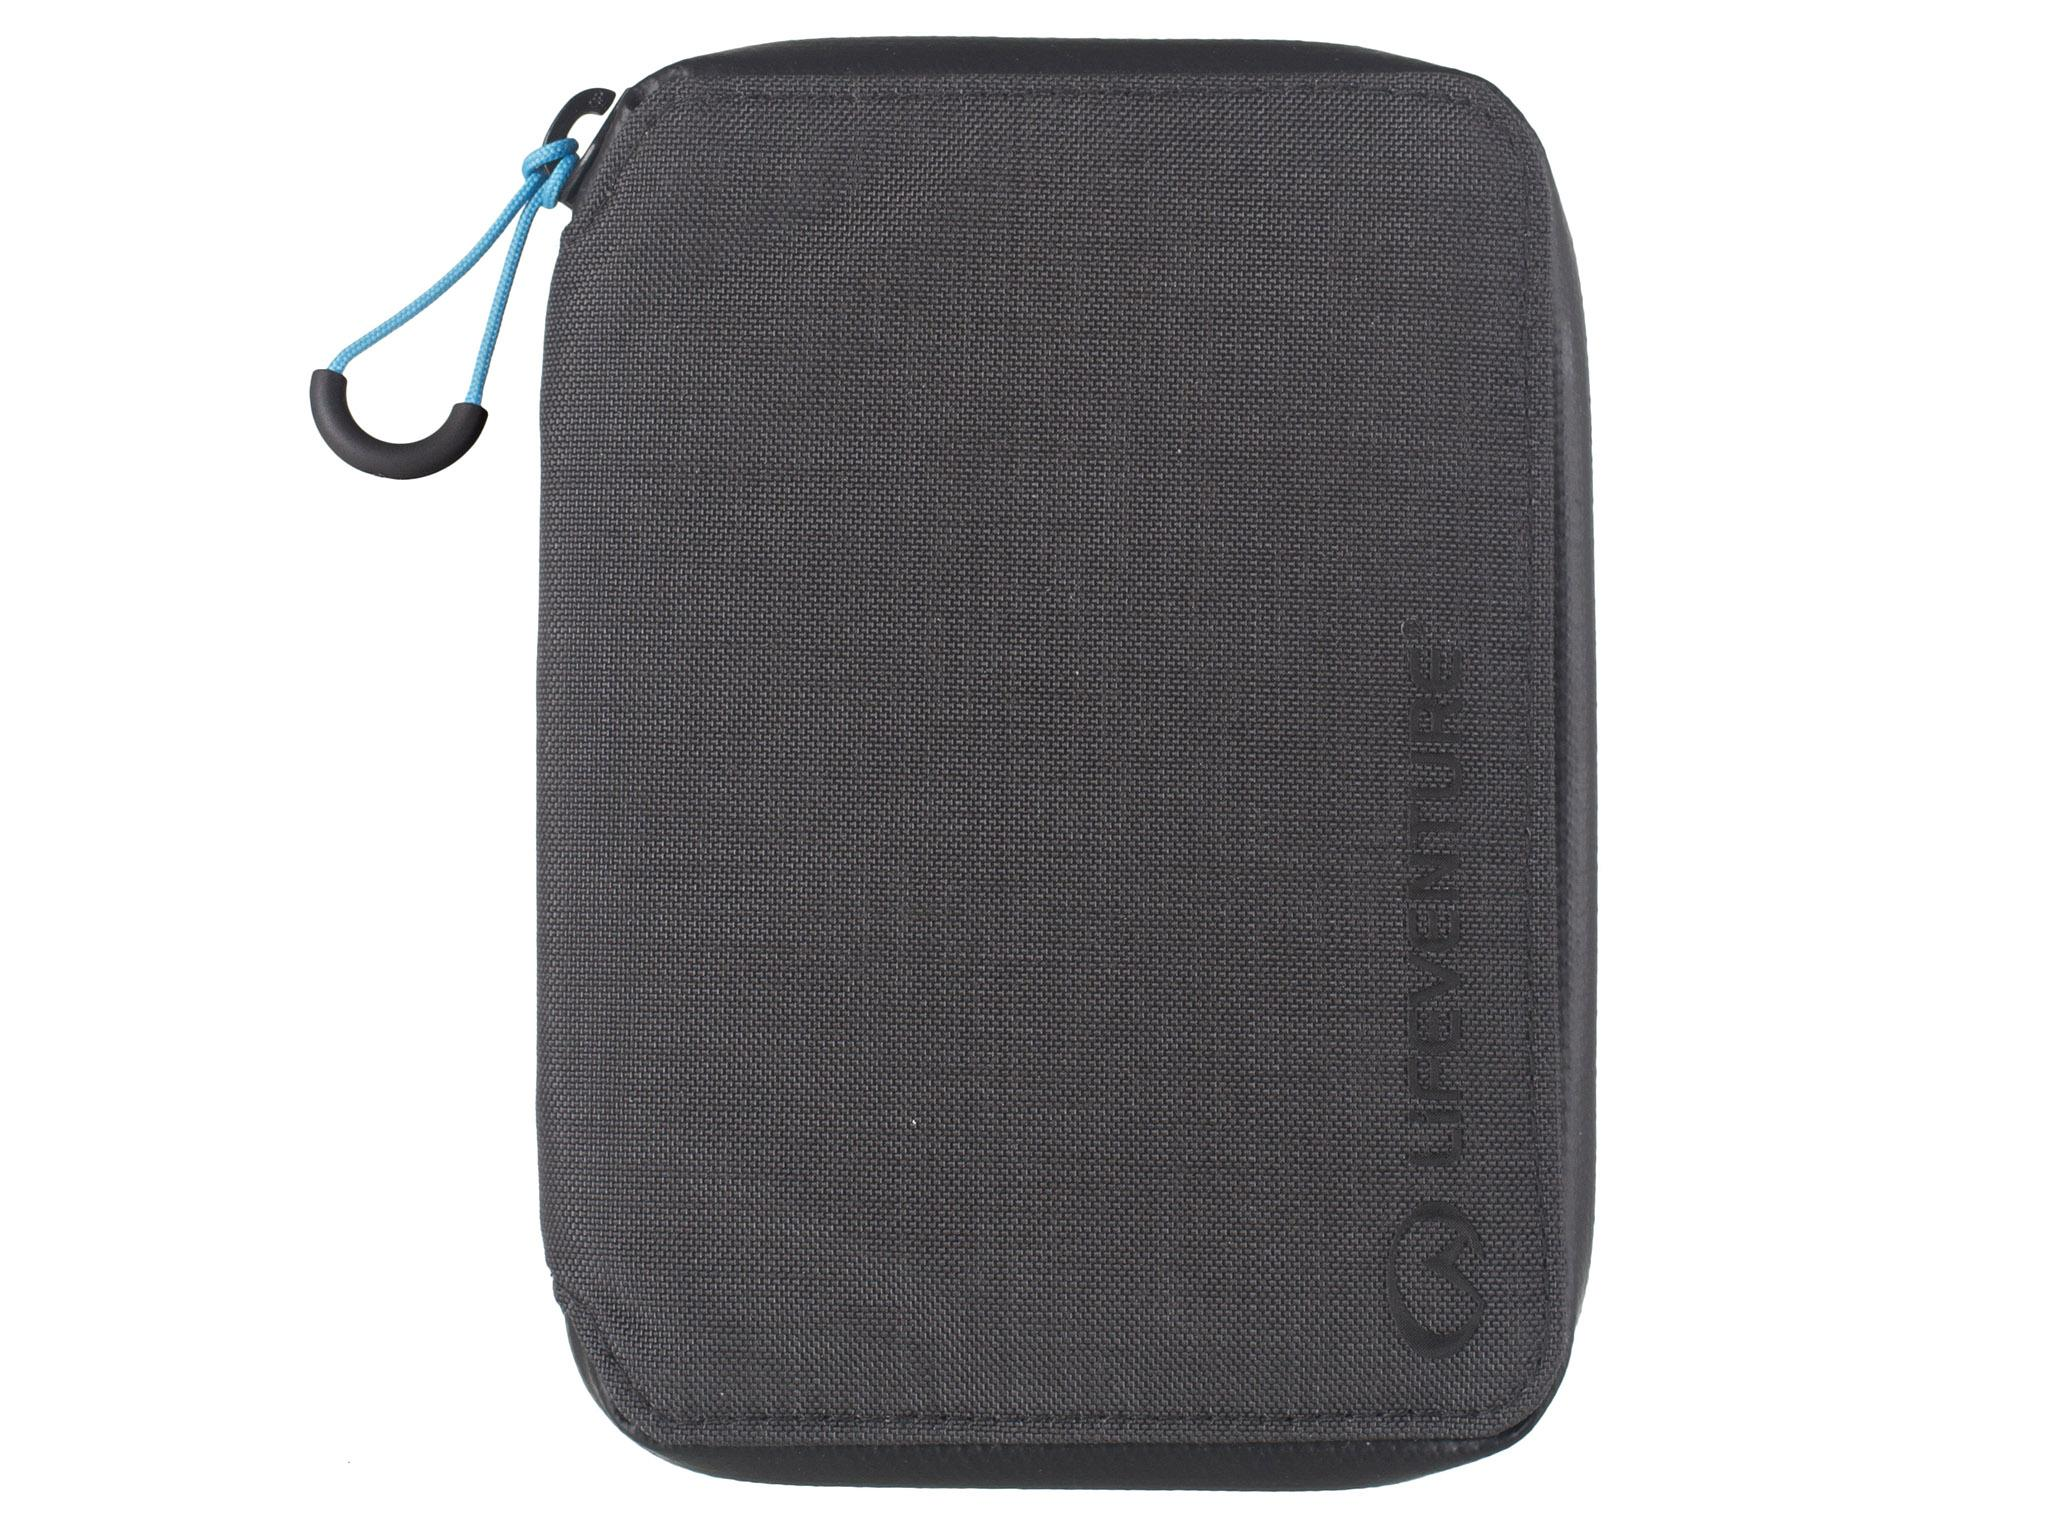 c8d5586ba993 Best travel wallet for passports, boarding passes and currency